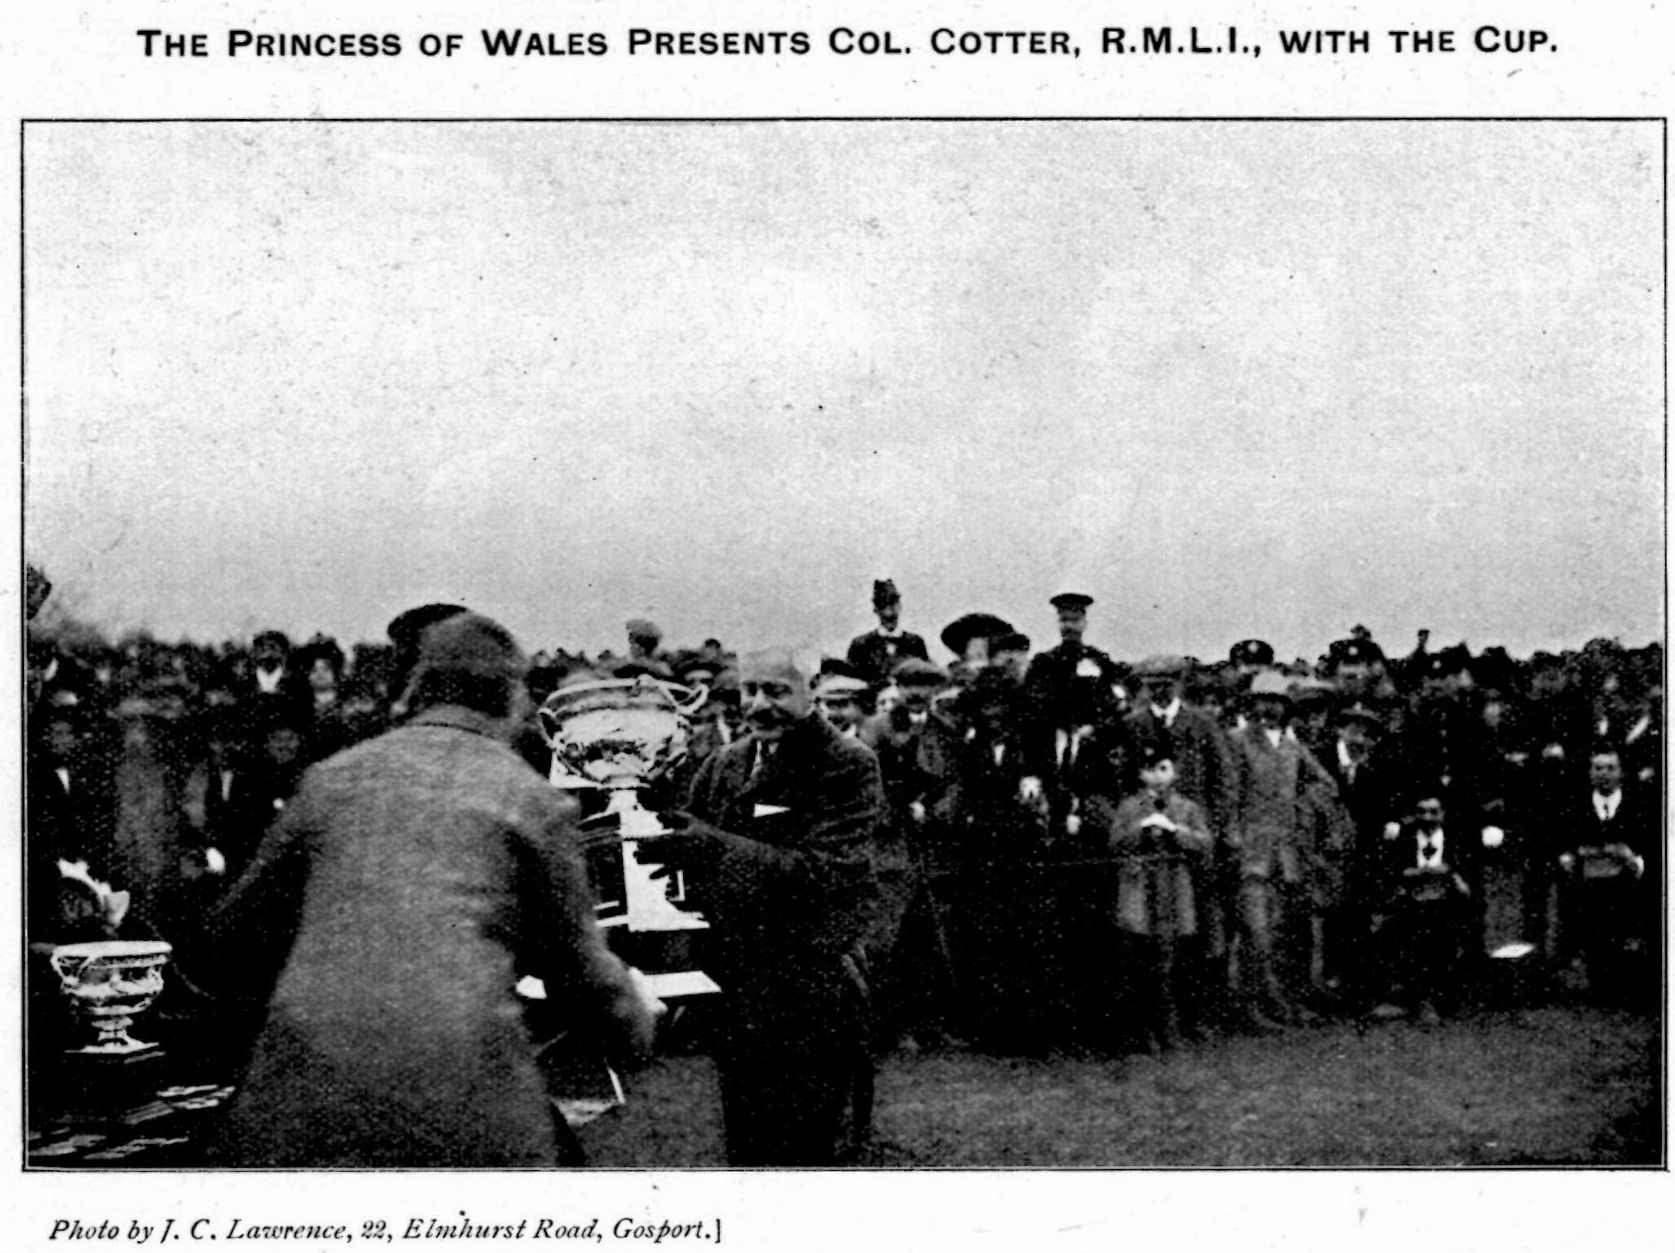 1910 HRH The Princess of Wales